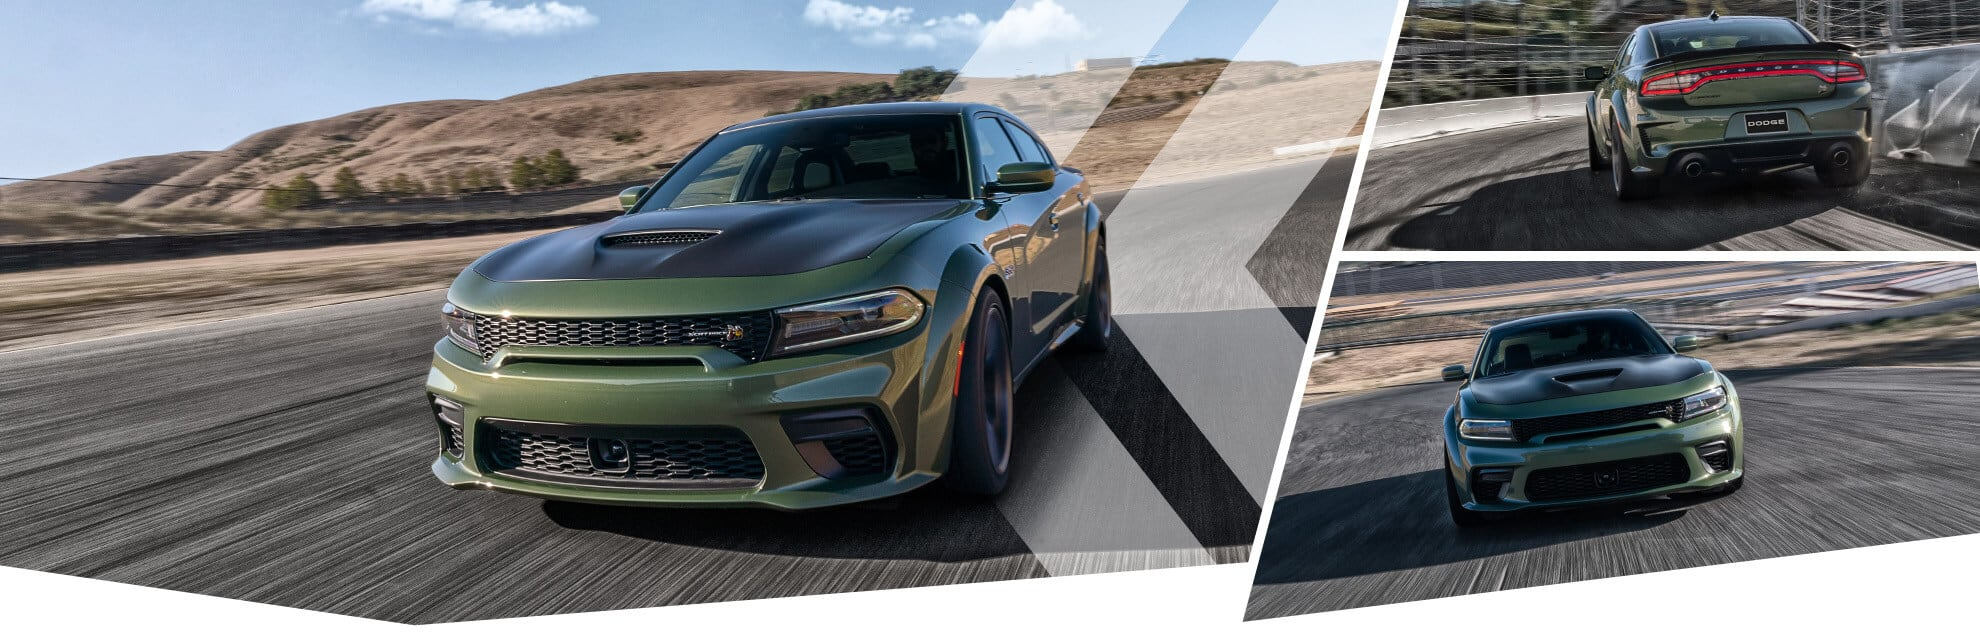 dodge charger scat pack colors 2 Dodge Charger  View Scat Pack, Paint Colors & More